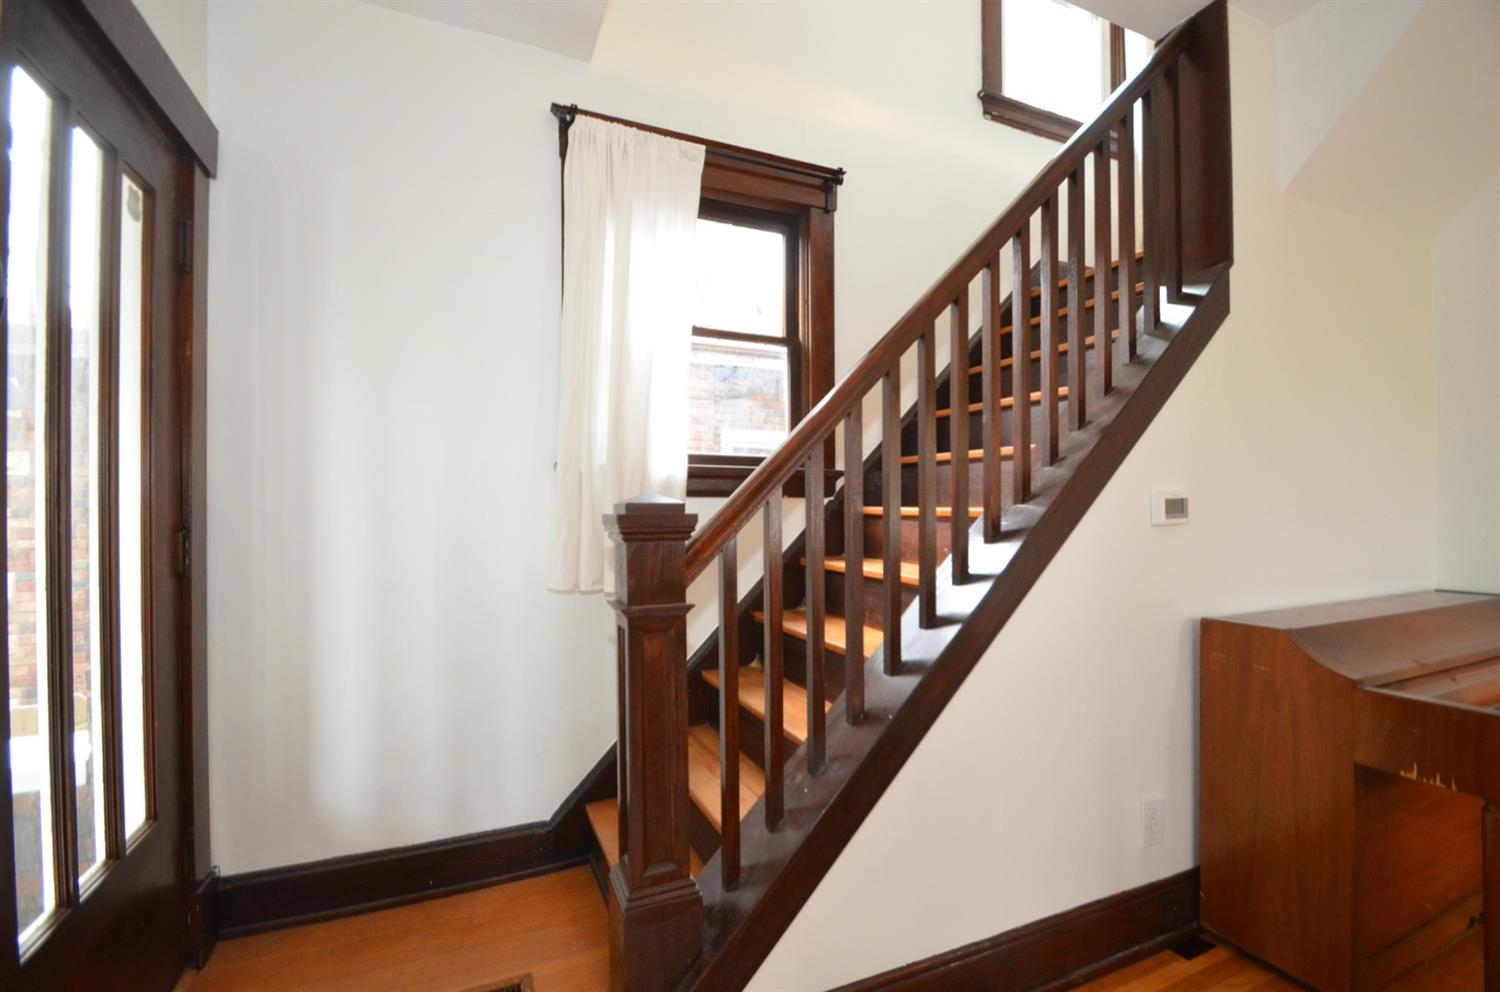 Look at this great Craftsman style staircase.  No faux revival here.  This is the real deal.